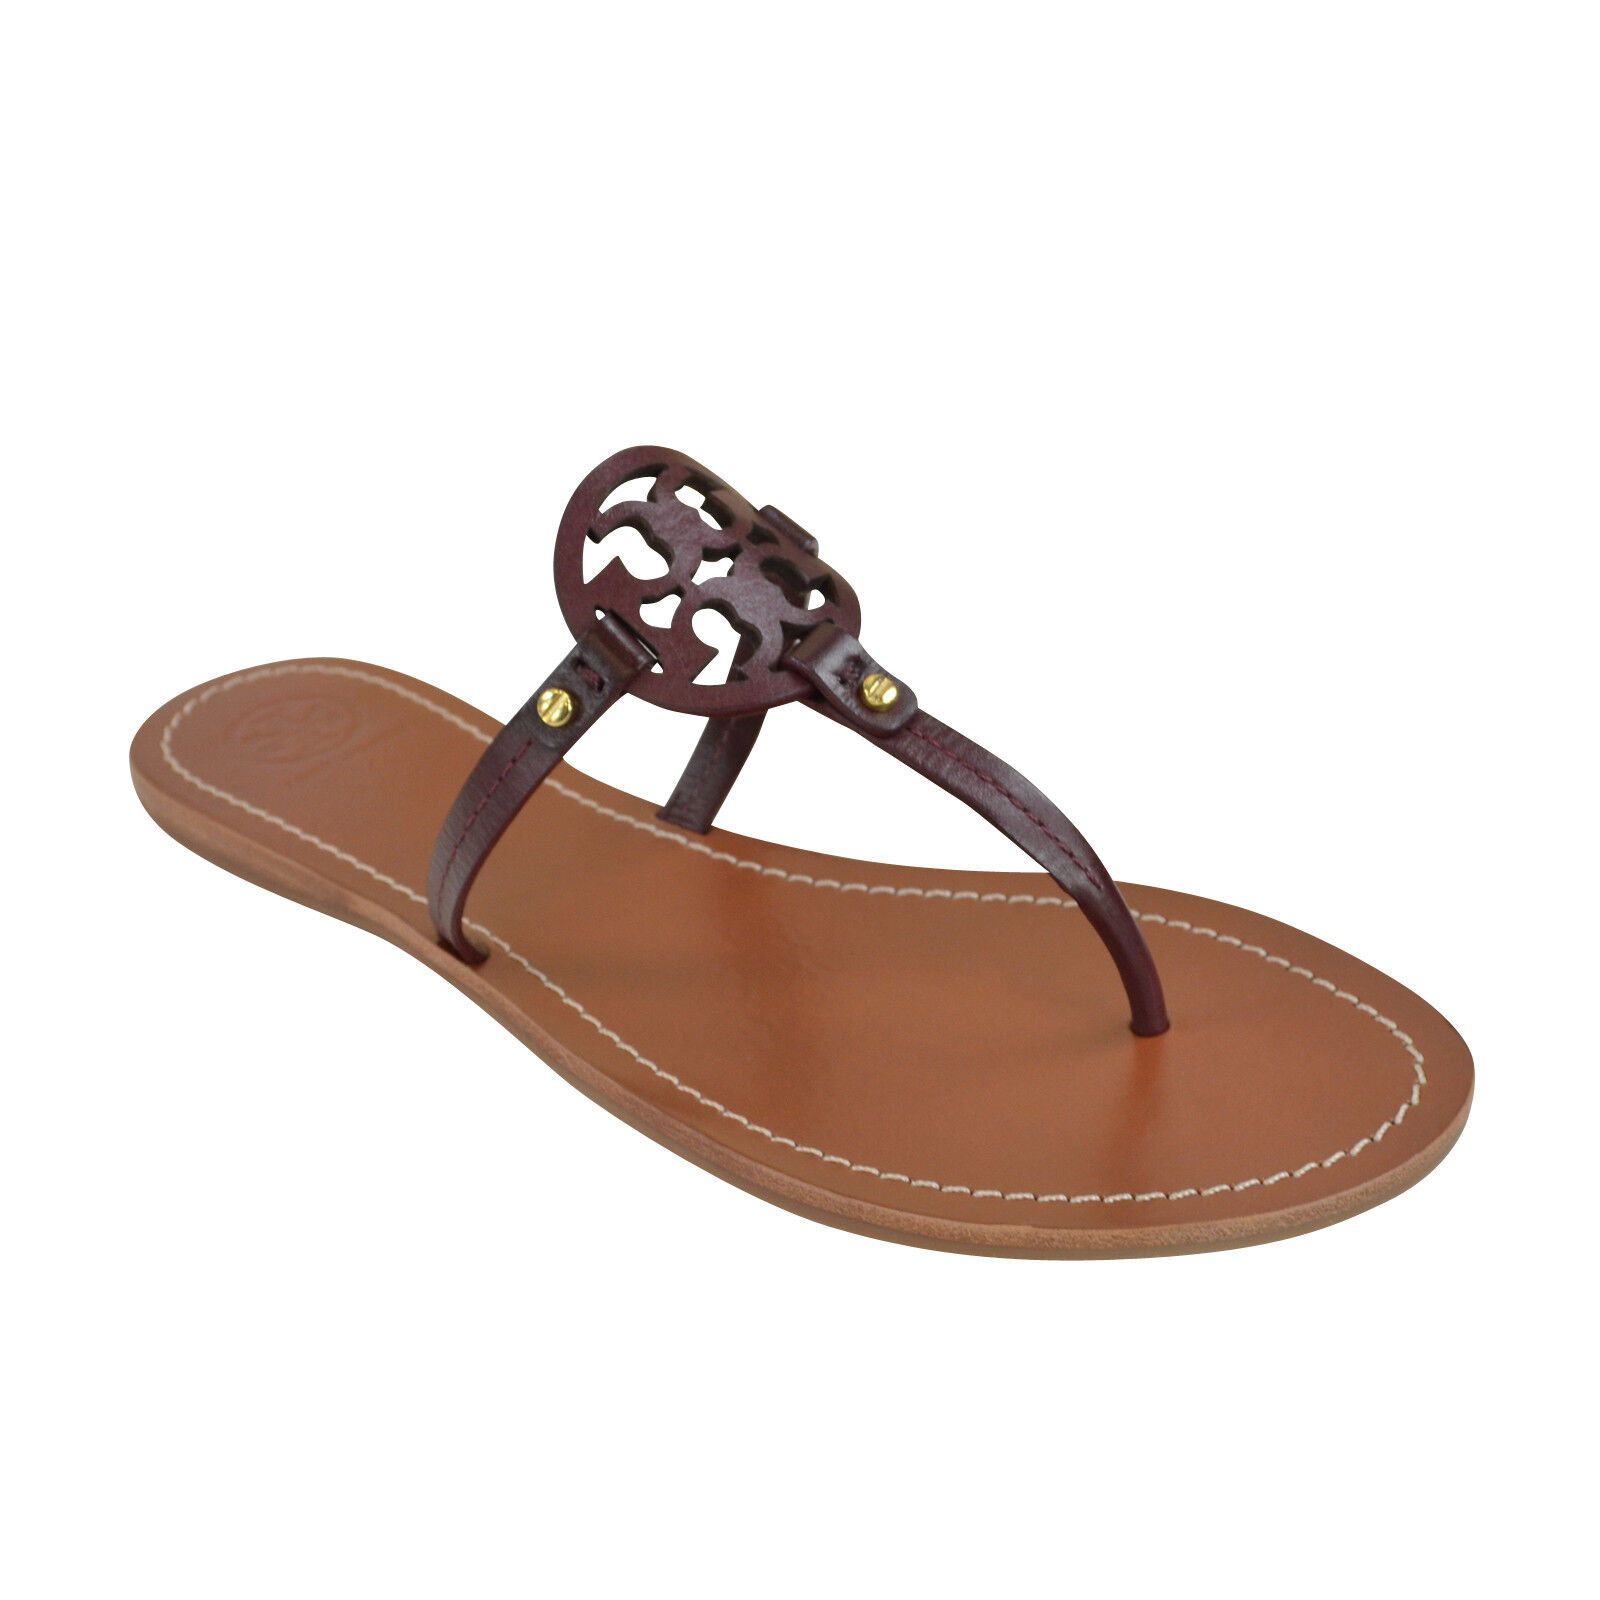 11127a2fe1e Tory Burch Mini Miller Thong Leather Sandals Oxblood 9